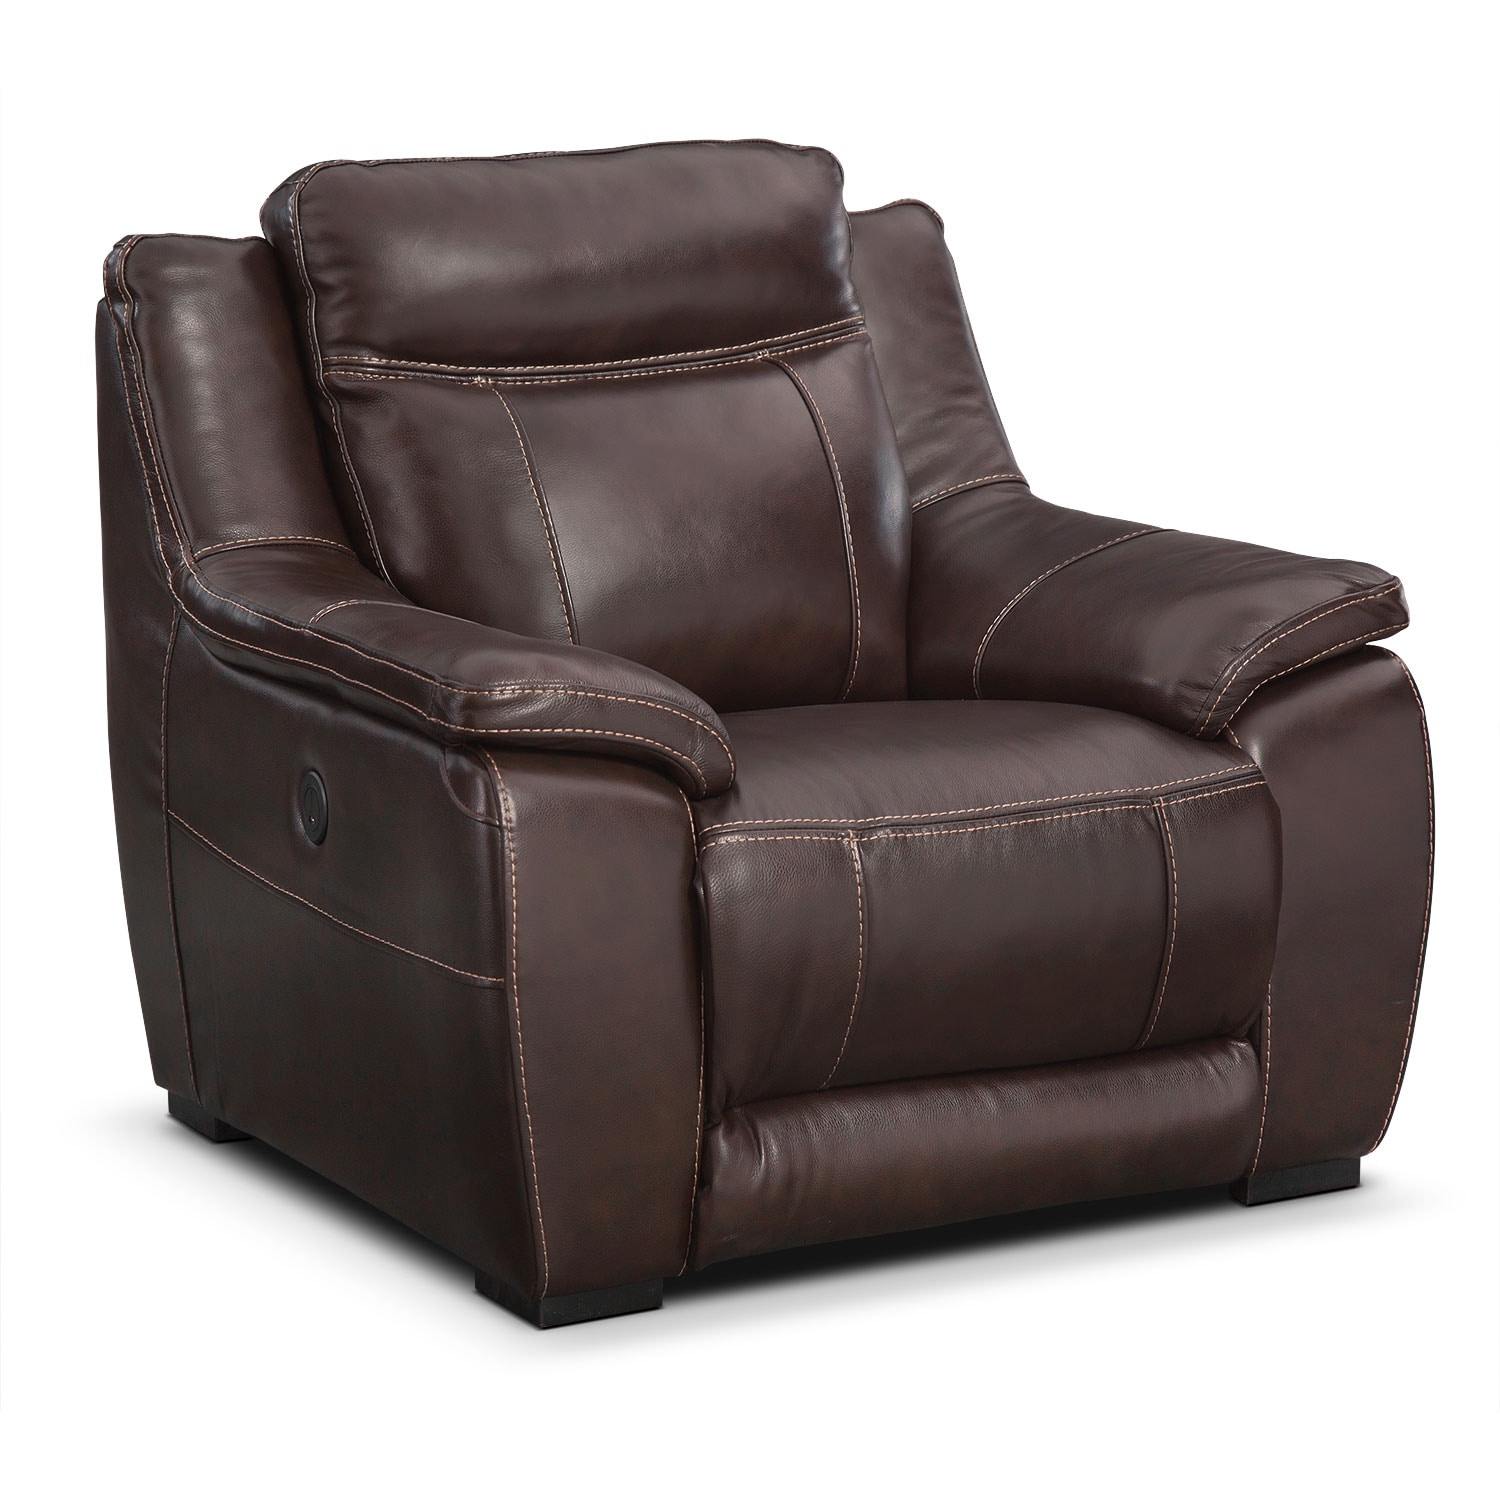 Power Reclining Chairs Lido Power Reclining Sofa Reclining Loveseat And Recliner